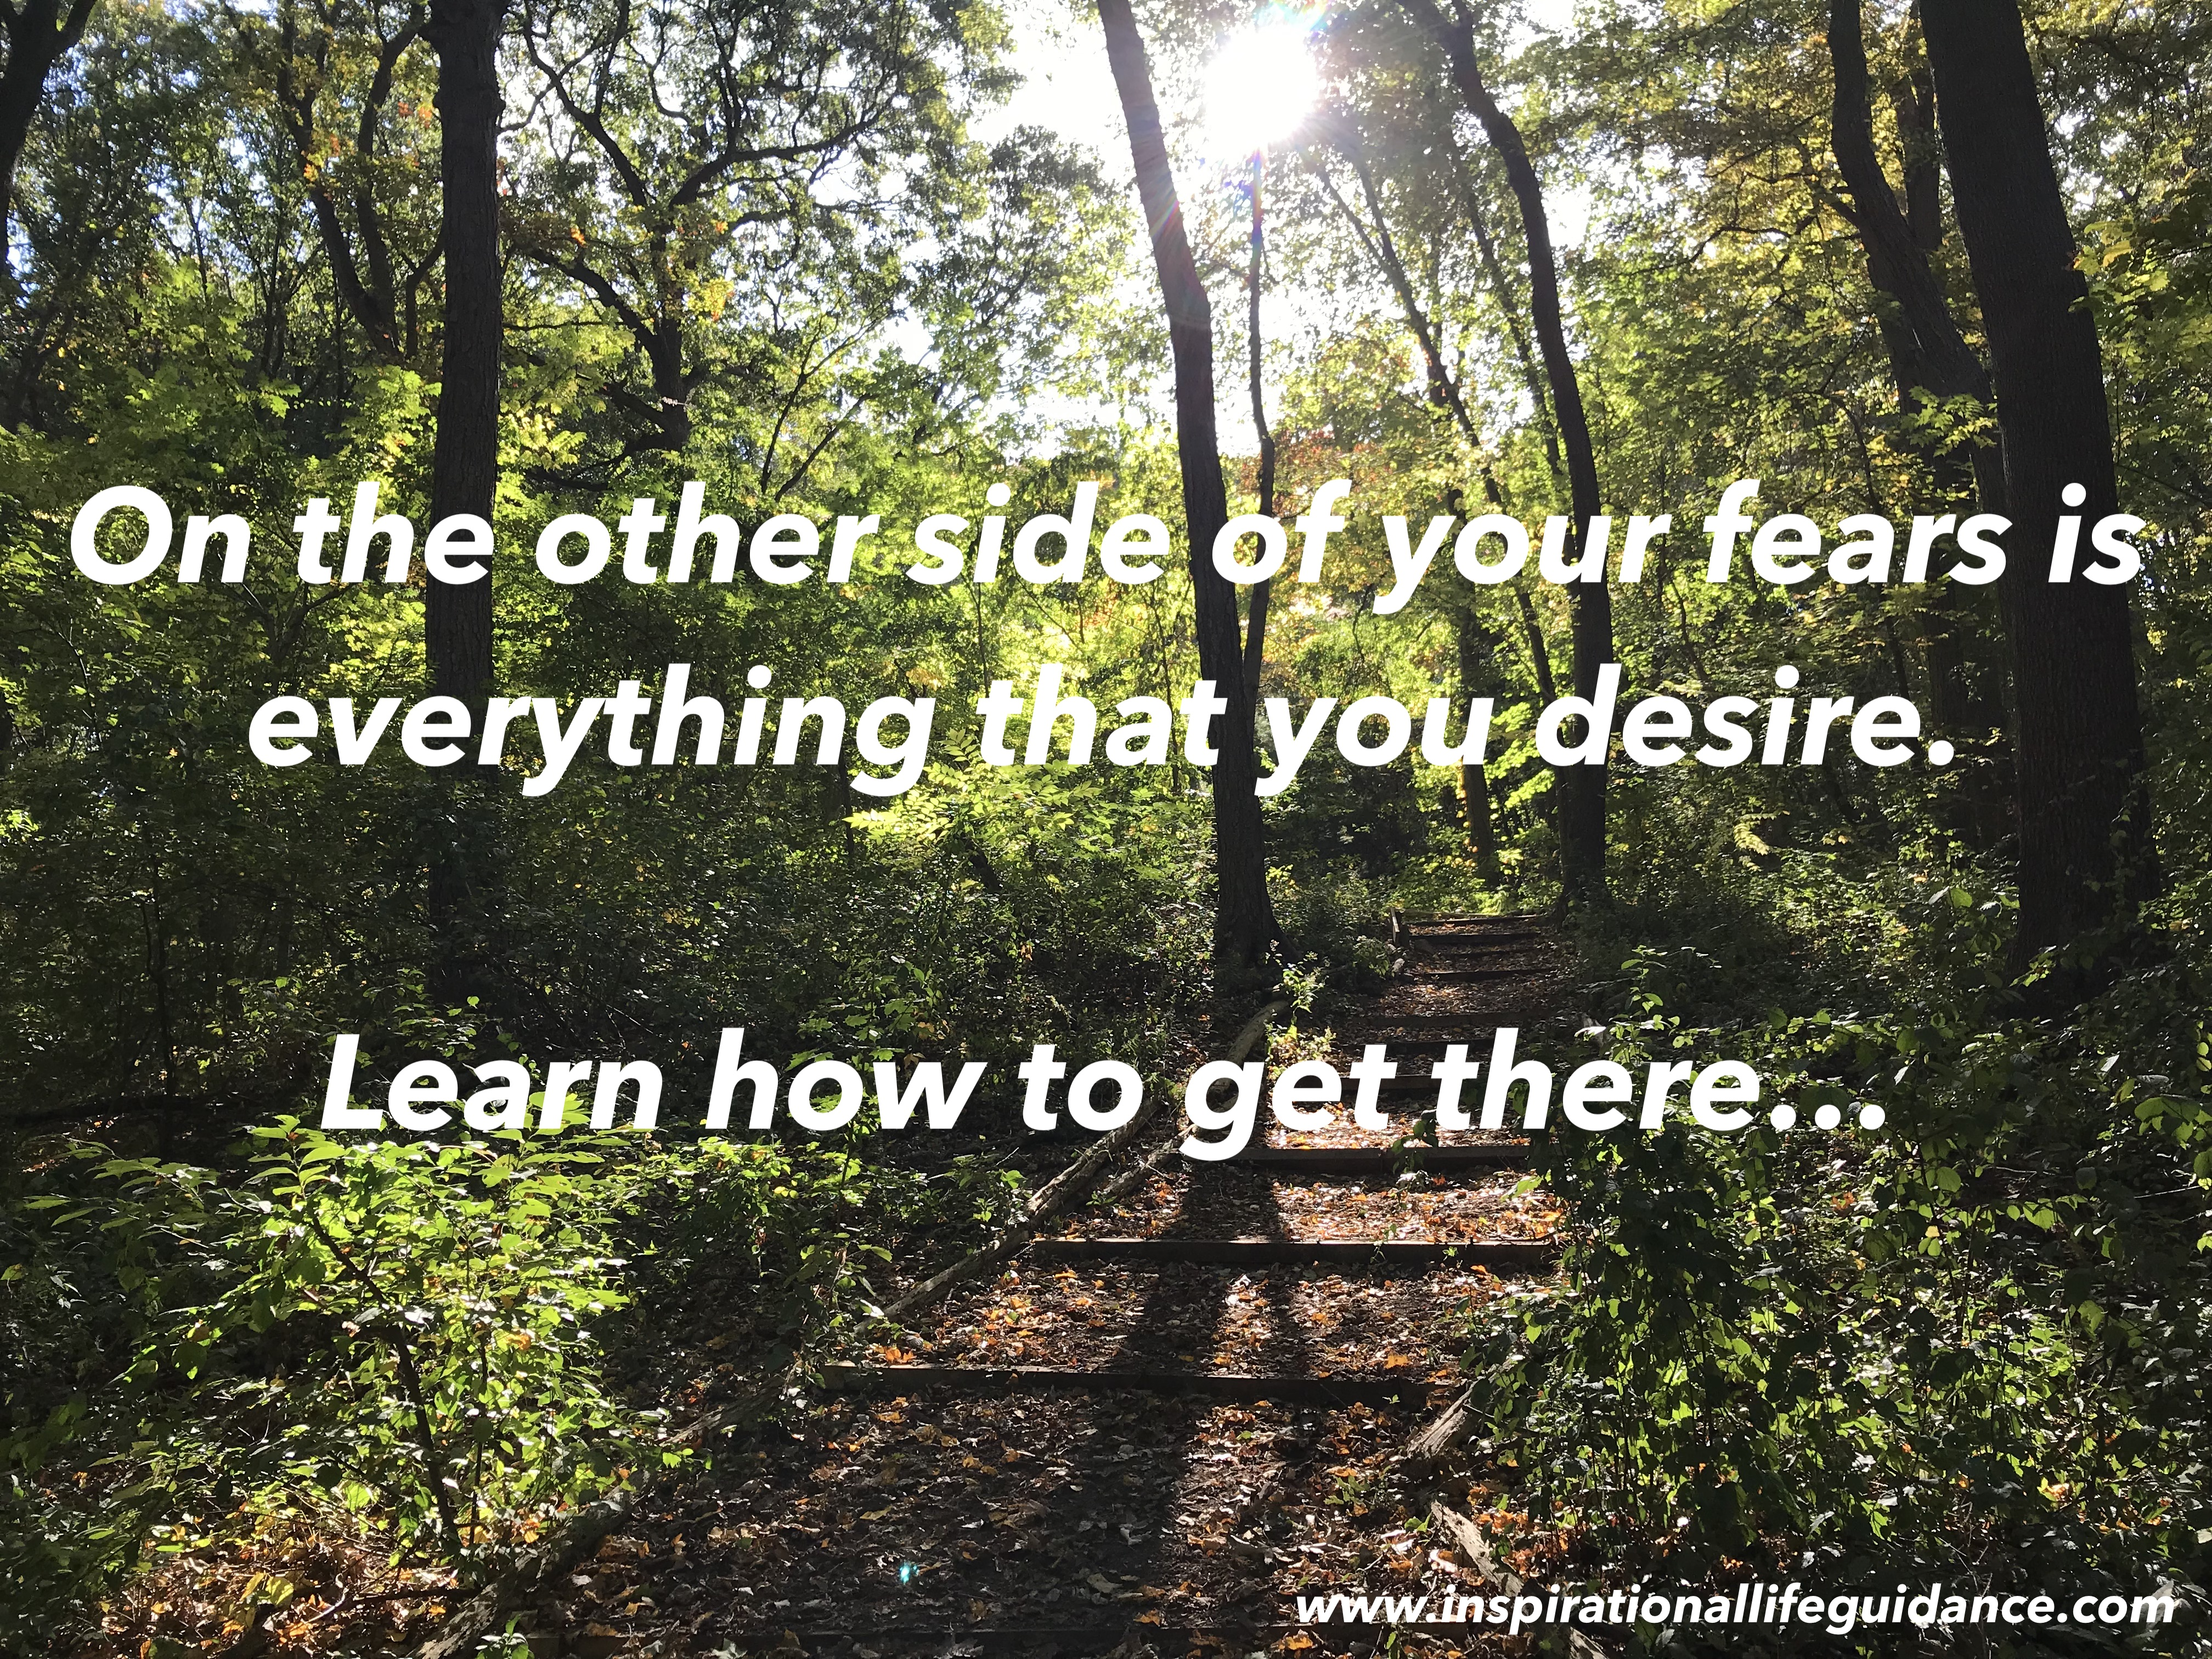 On the other side of your fears is everything that you desire. Learn how to get there. By Queens, New York Life Coach and Life Consultant Jonathan R. Wachtel. Seeking a psychologist, therapist, counselor, or coach in Kew Gardens, NY, Forest Hills, NY, Forest Hills Gardens, NY, Kew Garden Hills, NY, Queens, NY, Brooklyn, NY, Manhattan, NY, Nassau County, Long Island, NY, Suffolk County, Long Island, NY, Staten Island, the Bronx, New York City, New York State, or anywhere? Contact Kew Gardens, Queens, New York City, New York Life Coach and Life Consultant Jonathan to speak with a Life Coach & Life Consultant, Dating Coach & Dating Consultant, Relationship Coach & Relationship Consultant, Career Coach & Career Consultant, Business Coach & Business Consultant, Marketing Coach & Marketing Consultant, SEO Expert and SEO Consultant, Health Coach & Health Consultant, Success Coach & Success Consultant, Law Of Attraction Coach & Law Of Attraction Consultant, in Kew Gardens, Queens, New York City, New York, NY, near the Upper East Side of Manhattan, near Chelsea, NY, near Westchester, NY, near the Hamptons, on Long Island, NY, serving Kew Gardens, NY, Forest Hills, NY, Forest Hills Gardens, NY, Kew Garden Hills, NY, all of Queens, NY, Brooklyn, NY, Manhattan, NY, Nassau County, Long Island, NY, Suffolk County, Long Island, NY, Staten Island, the Bronx, all of New York State, and surrounding areas, and on the phone or online anywhere. Contact Kew Gardens, Queens, New York City, New York Life Coach and Life Consultant Jonathan for Life Coaching, Dating Coaching & Dating Consulting, Relationship Coaching & Relationship Consulting, Career Coaching & Career Consulting, Business Coaching & Business Consulting, Marketing Coaching & Marketing Consulting, SEO Expertise & SEO Consulting, Health Coaching & Health Consulting, Success Coaching & Success Consulting, Law Of Attraction Coaching & Law Of Attraction Consulting, in Kew Gardens, Queens, New York City, New York, NY, near the Upper East Side of Manhattan, near Chelsea, NY, near Westchester, NY, near the Hamptons, on Long Island, NY, serving Kew Gardens, NY, Forest Hills, NY, Forest Hills Gardens, NY, Kew Garden Hills, NY, all of Queens, NY, Brooklyn, NY, Manhattan, NY, Nassau County, Long Island, NY, Suffolk County, Long Island, NY, Staten Island, the Bronx, all of New York State, and surrounding areas, and on the phone or online anywhere. If you're seeking therapy, counseling, or coaching in Kew Gardens, NY, Forest Hills, NY, Forest Hills Gardens, NY, Kew Garden Hills, NY, Queens, NY, Brooklyn, NY, Manhattan, NY, Nassau County, Long Island, NY, Suffolk County, Long Island, NY, Staten Island, the Bronx, New York City, New York State, or surrounding areas, contact New York Life Coach Jonathan.